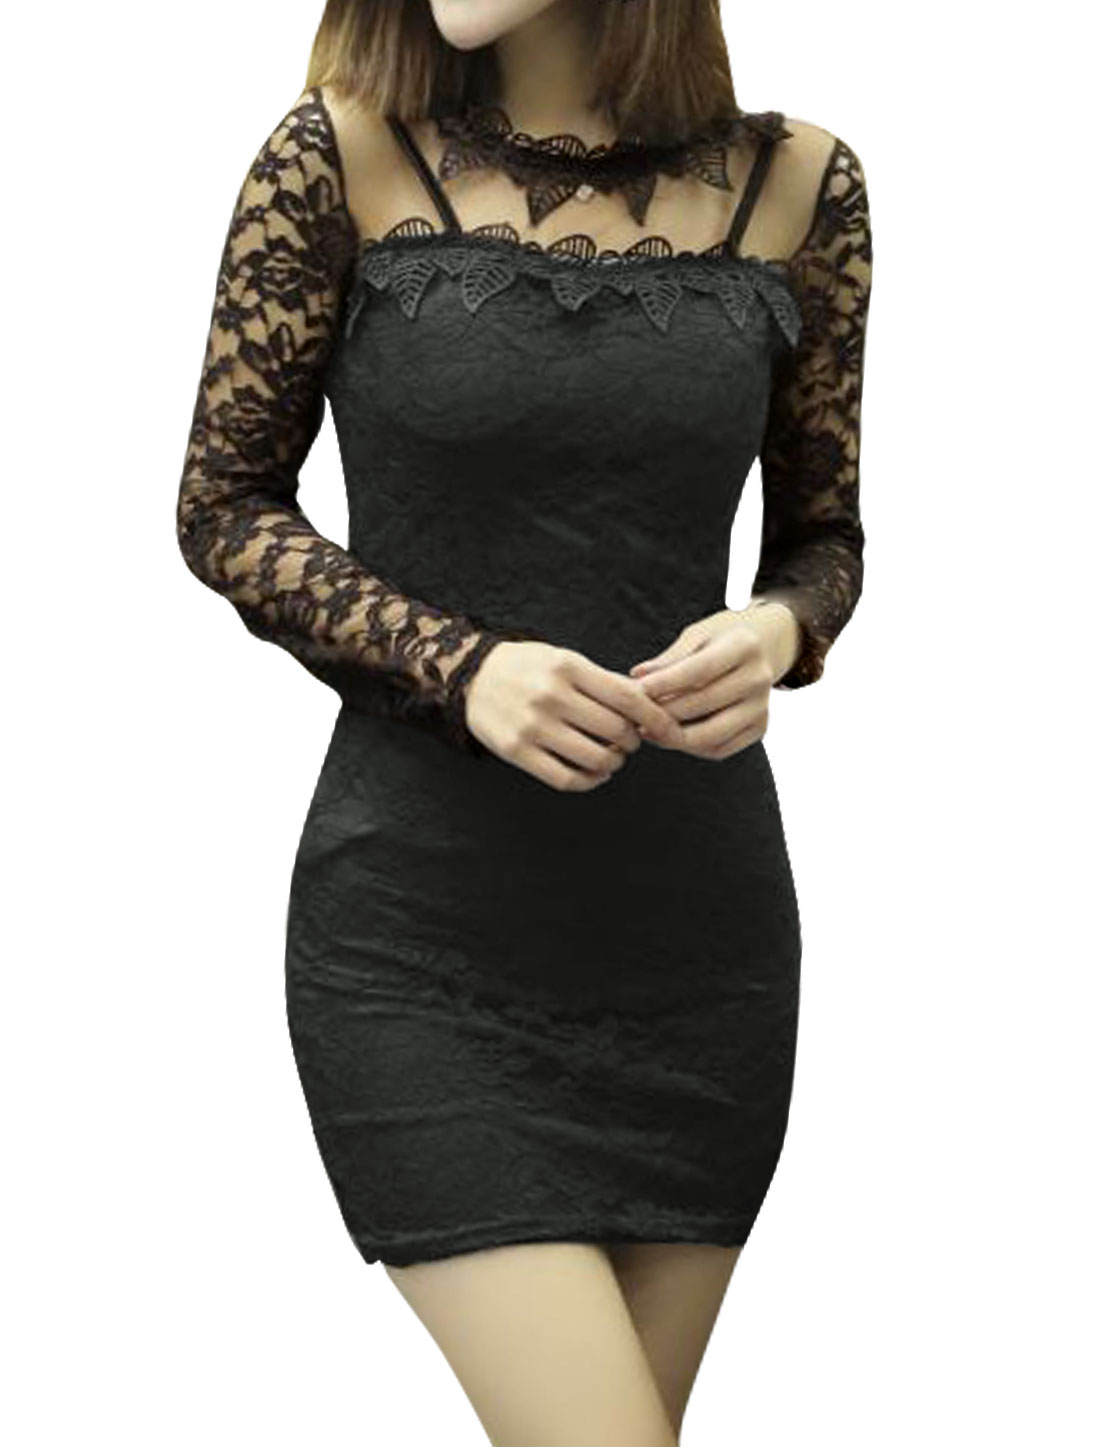 Women Leaves Applique Mesh Panel Lace Mini Bodycon Dress Black XS